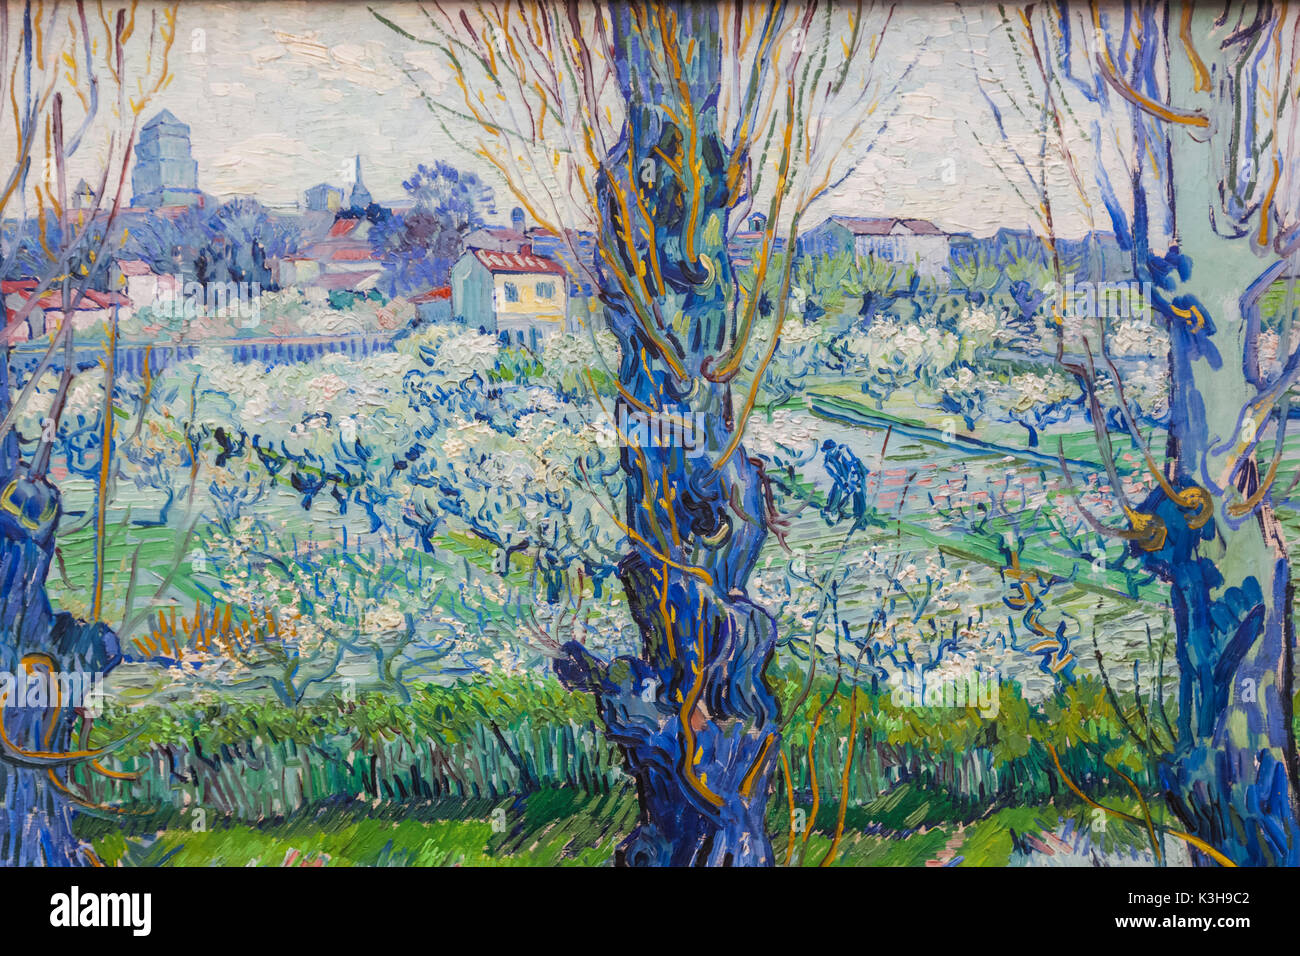 Germany, Bavaria, Munich, The New Pinakothek Museum (Neue Pinakothek), Painting titled 'View of Arles' (Blick auf Arles) by Vincent van Gogh dated 1889 - Stock Image